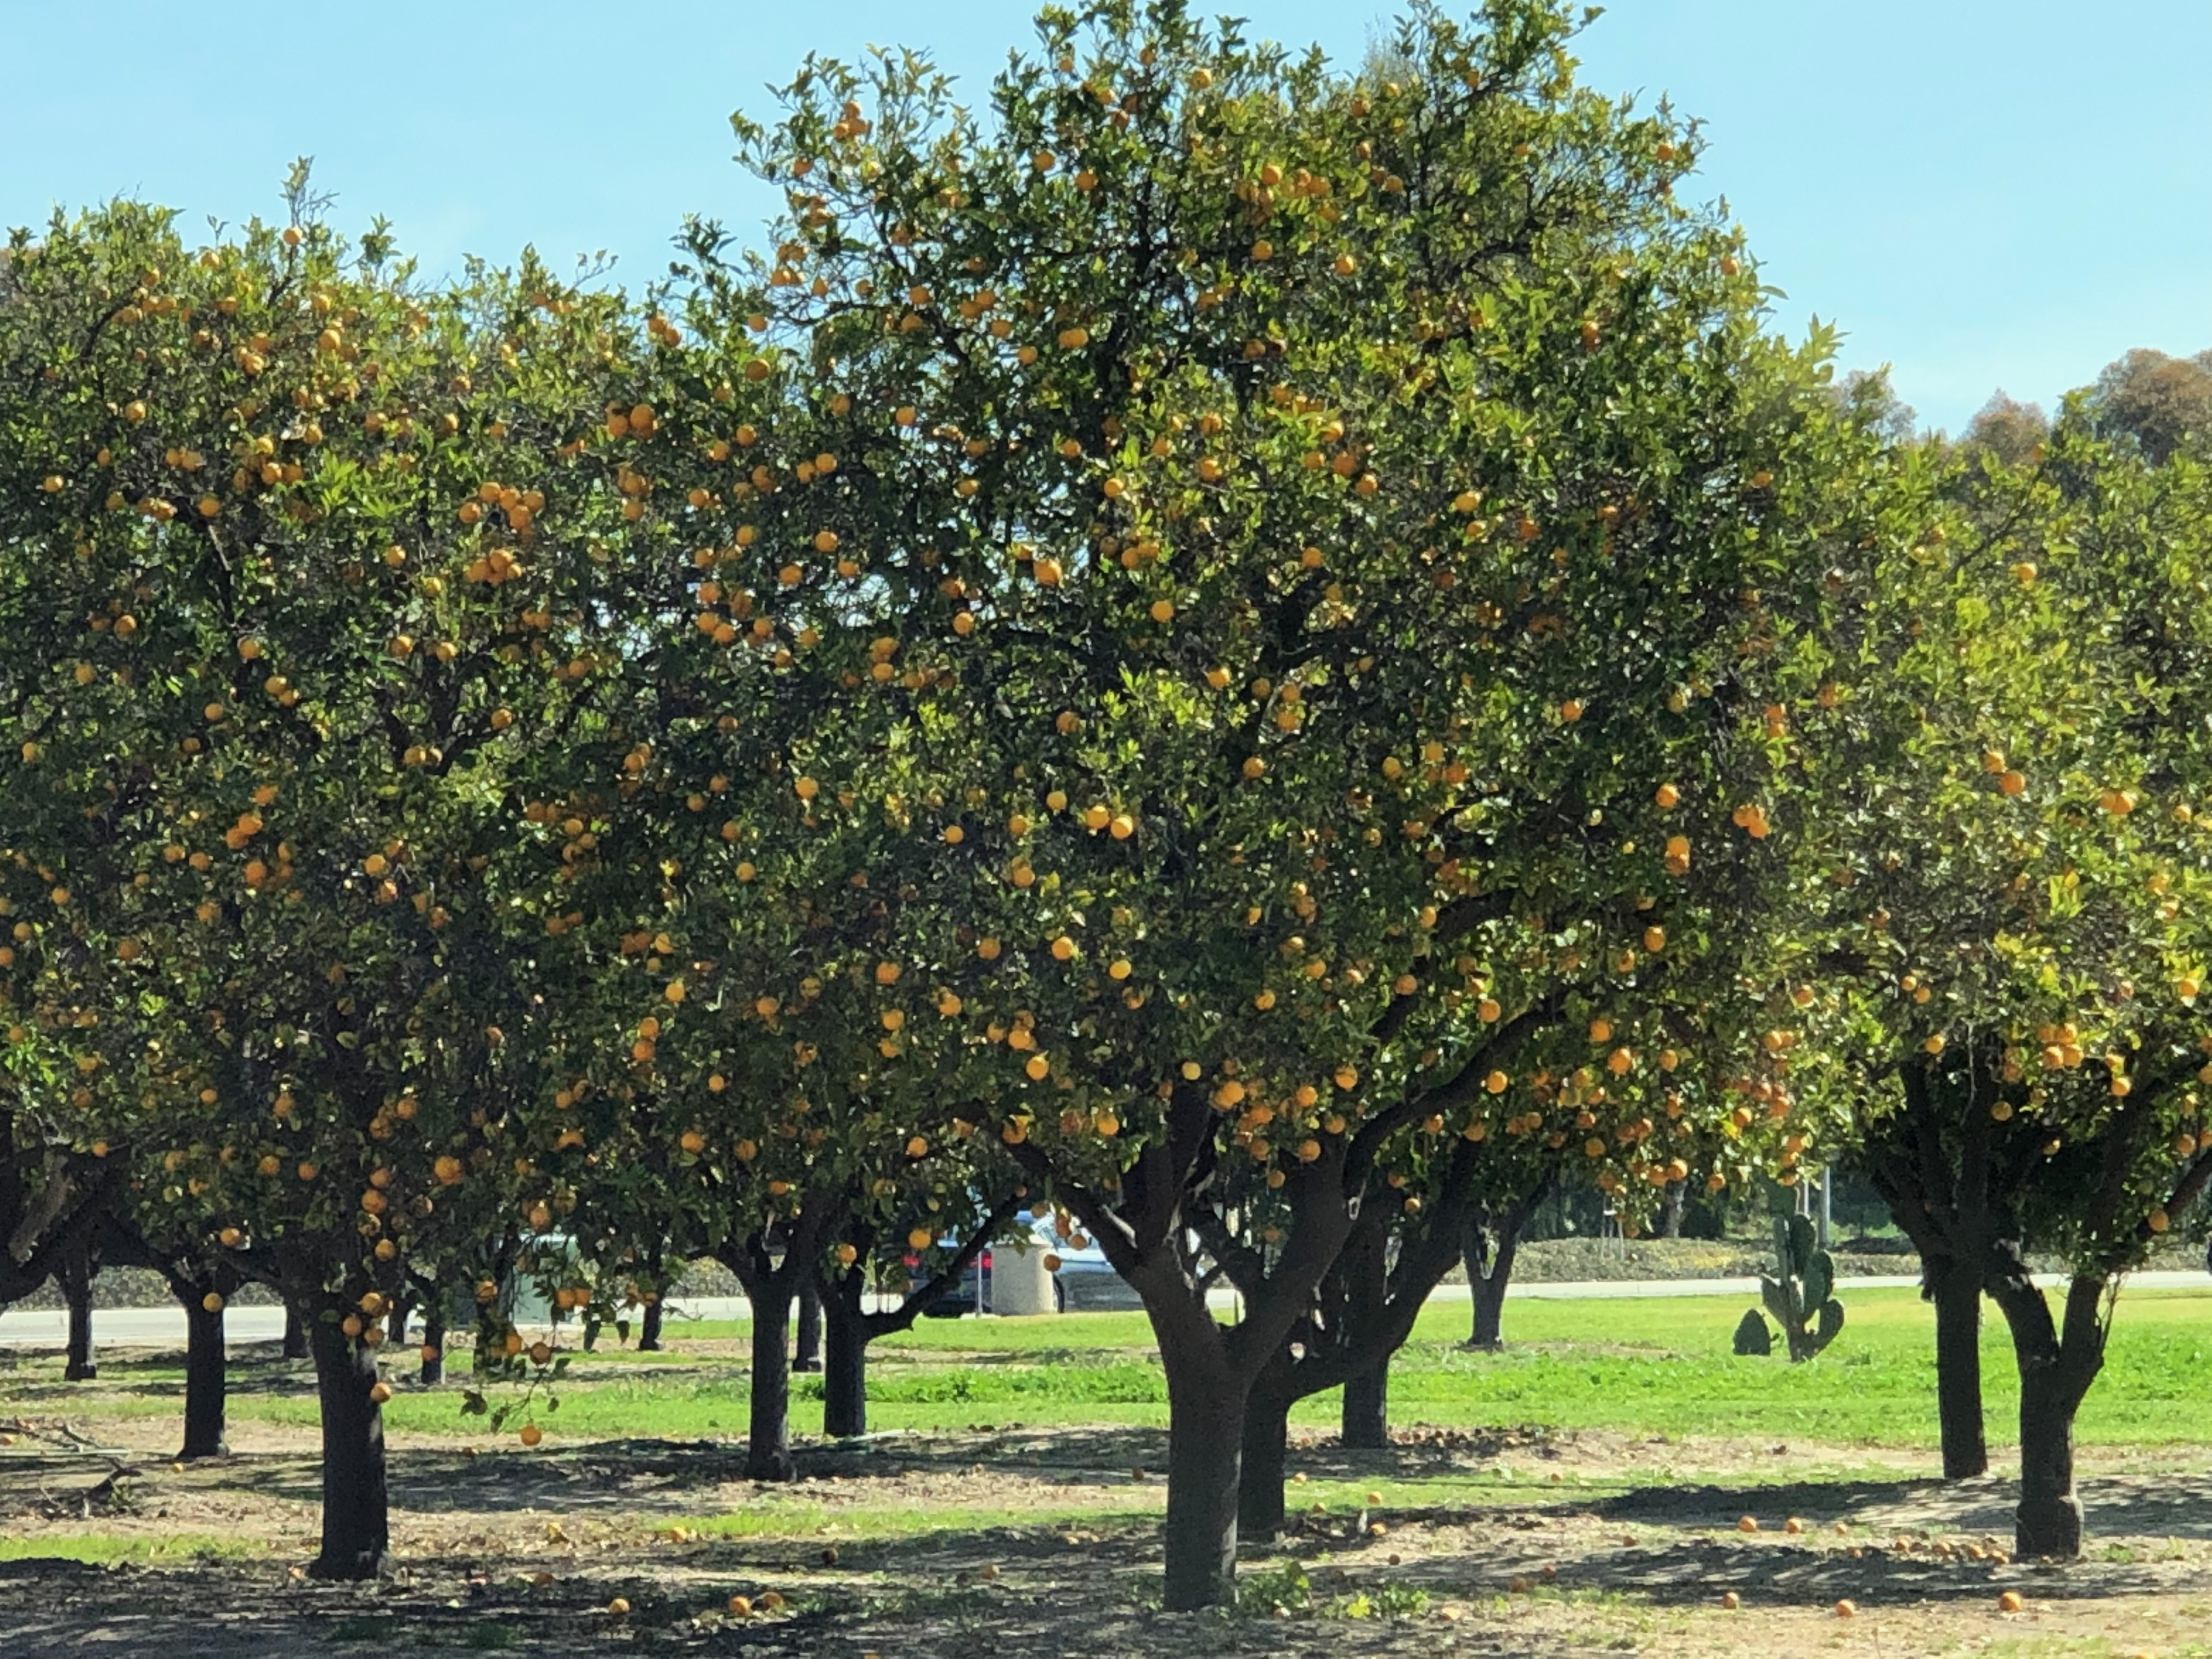 Citrus Trees on the Side of the Street